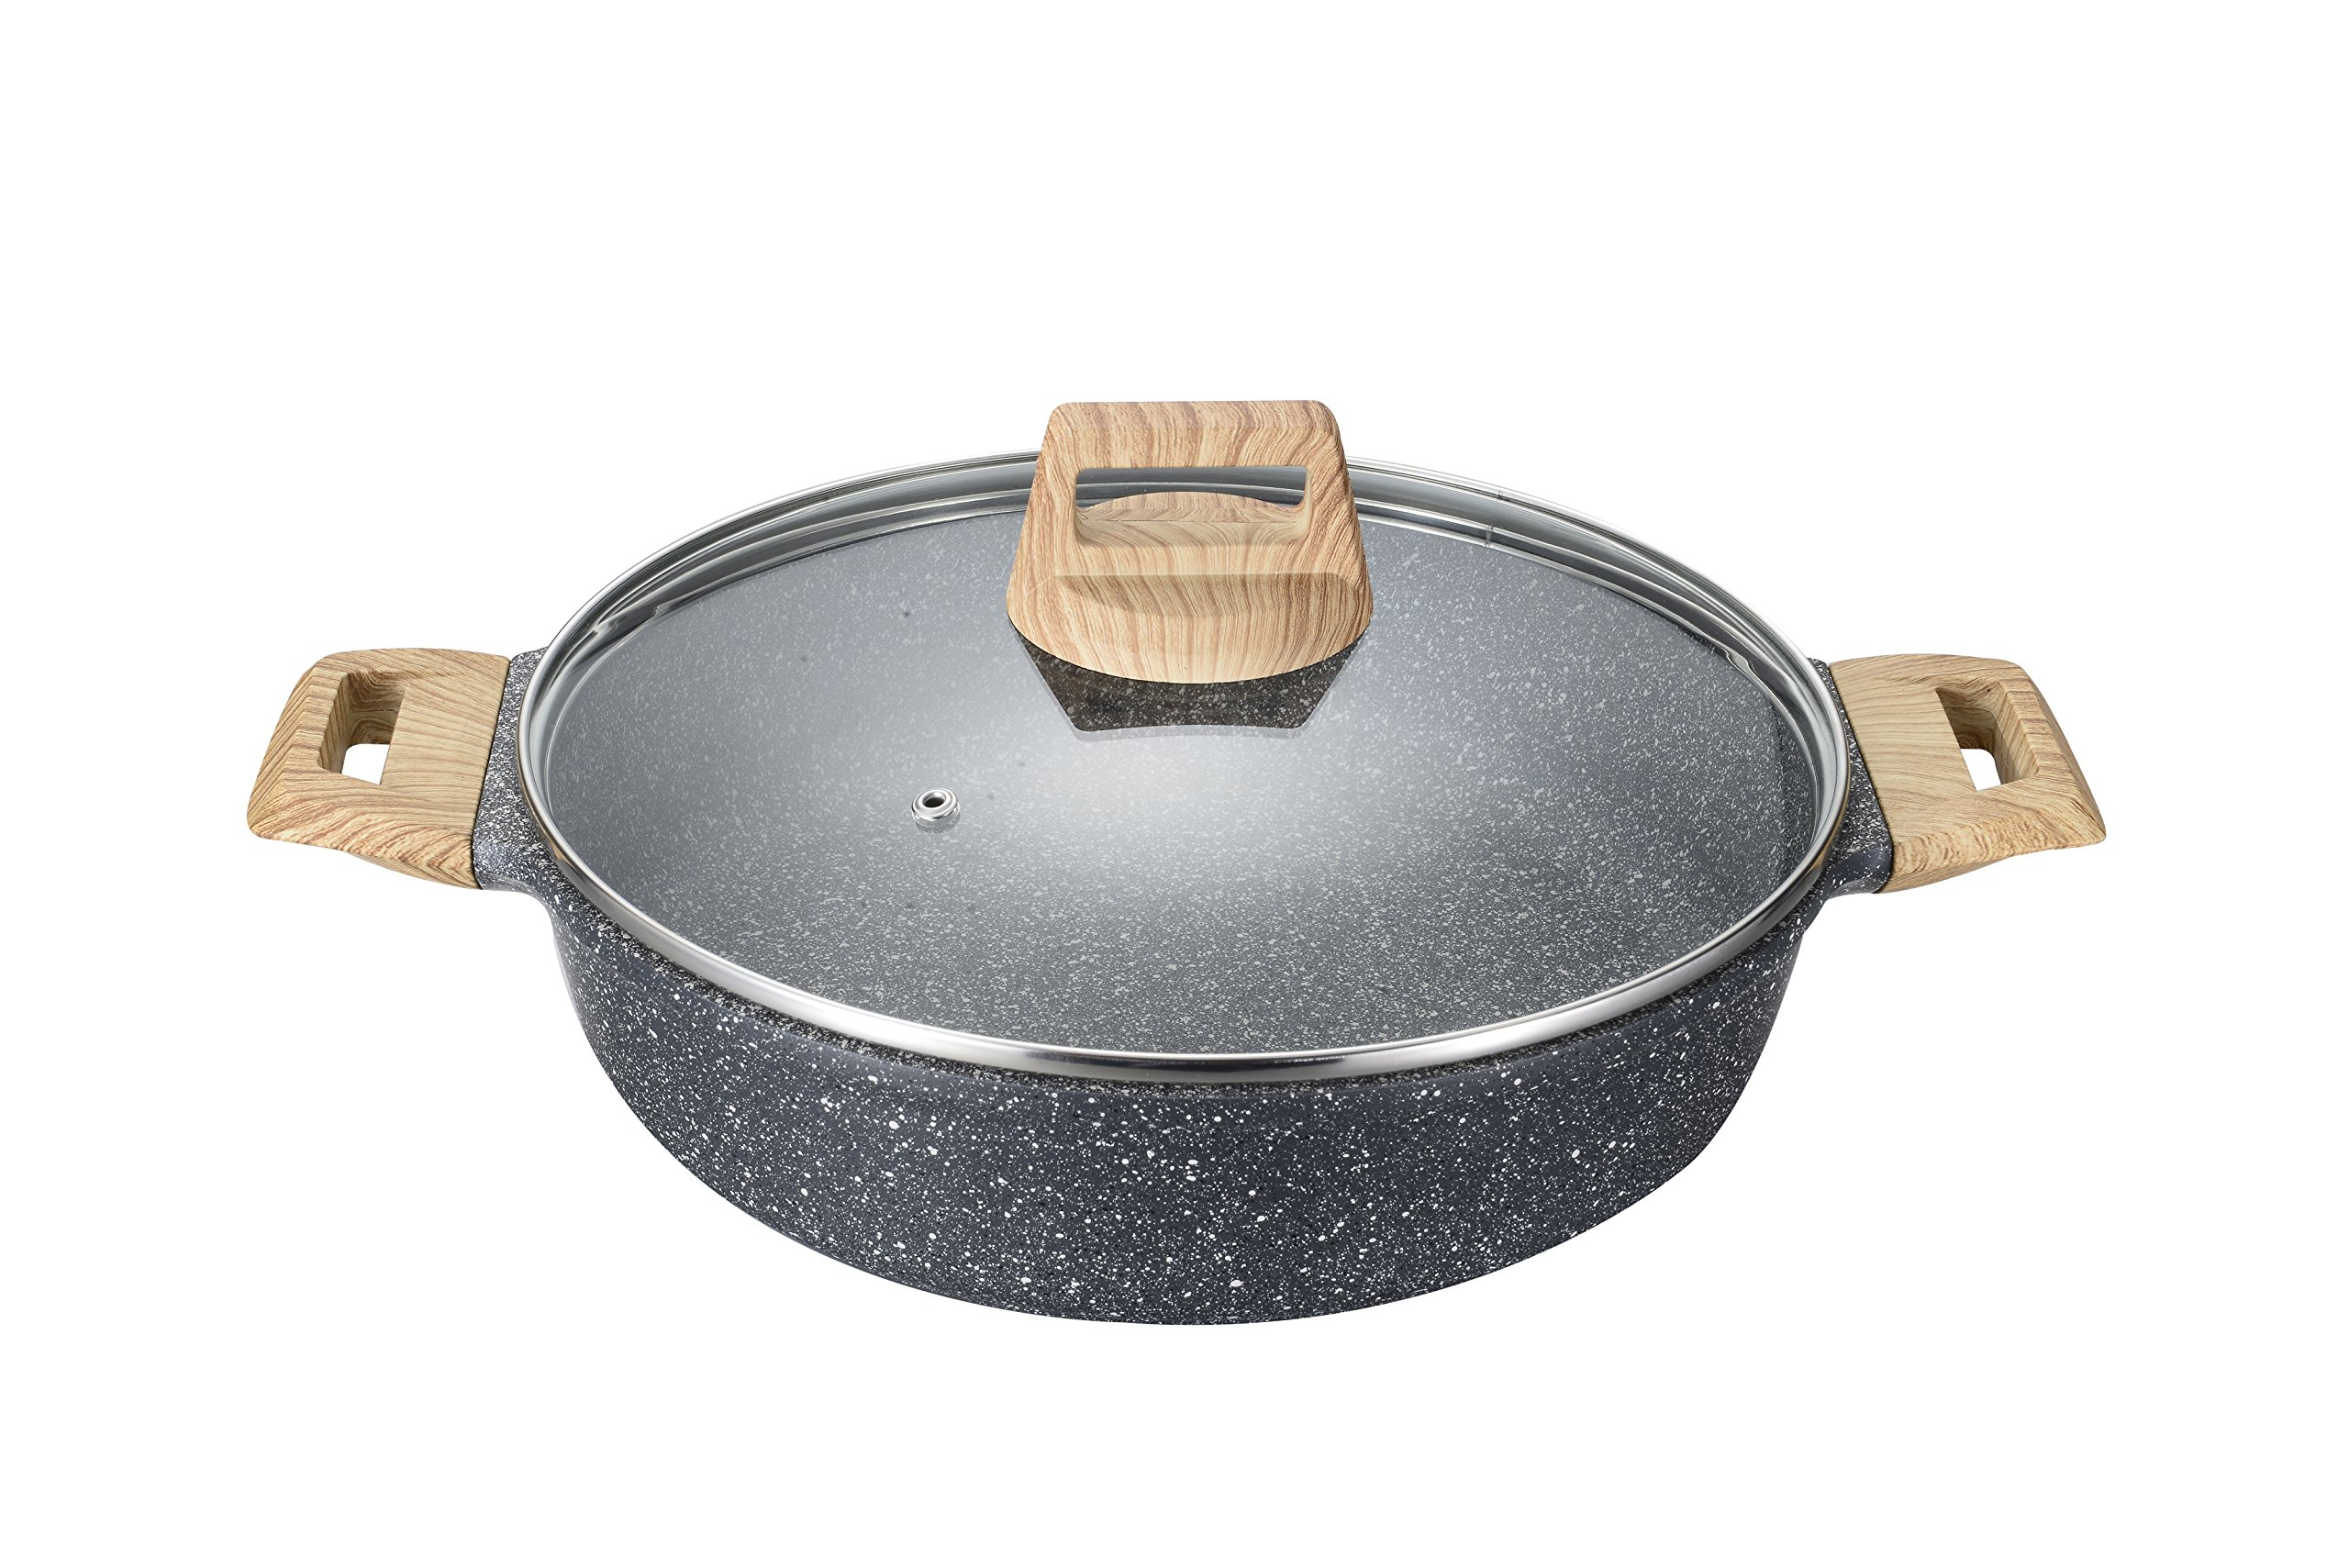 Carote 9.5 Inch/3 Quart Low Casserole PFOA Free Stone-Derived Non-Stick Coating From Switzerland, With Lid,Wood Effect Handle,Suitable For All Stove Including Induction